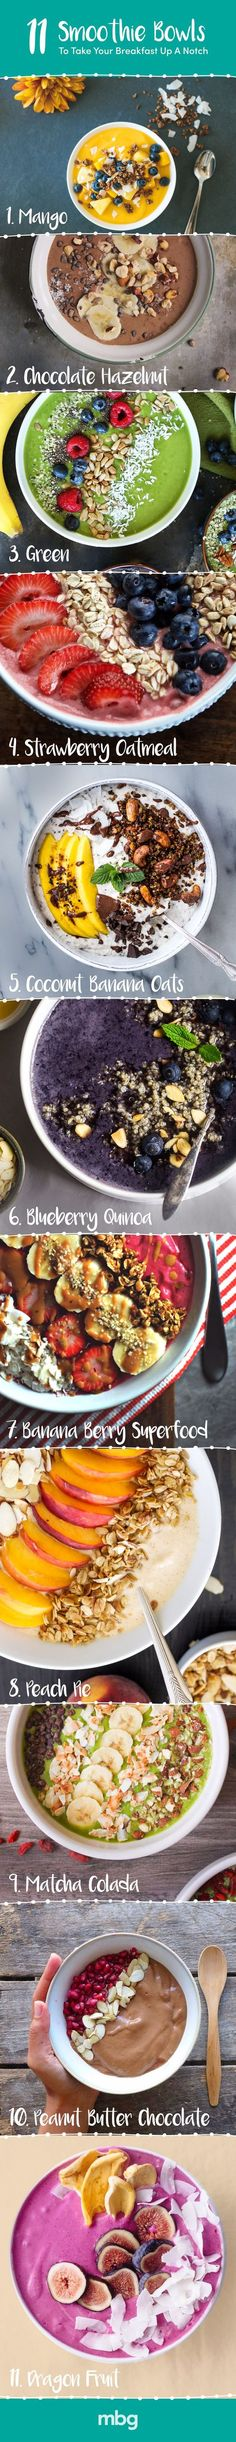 These smoothie bowls can completely transform your morning!: